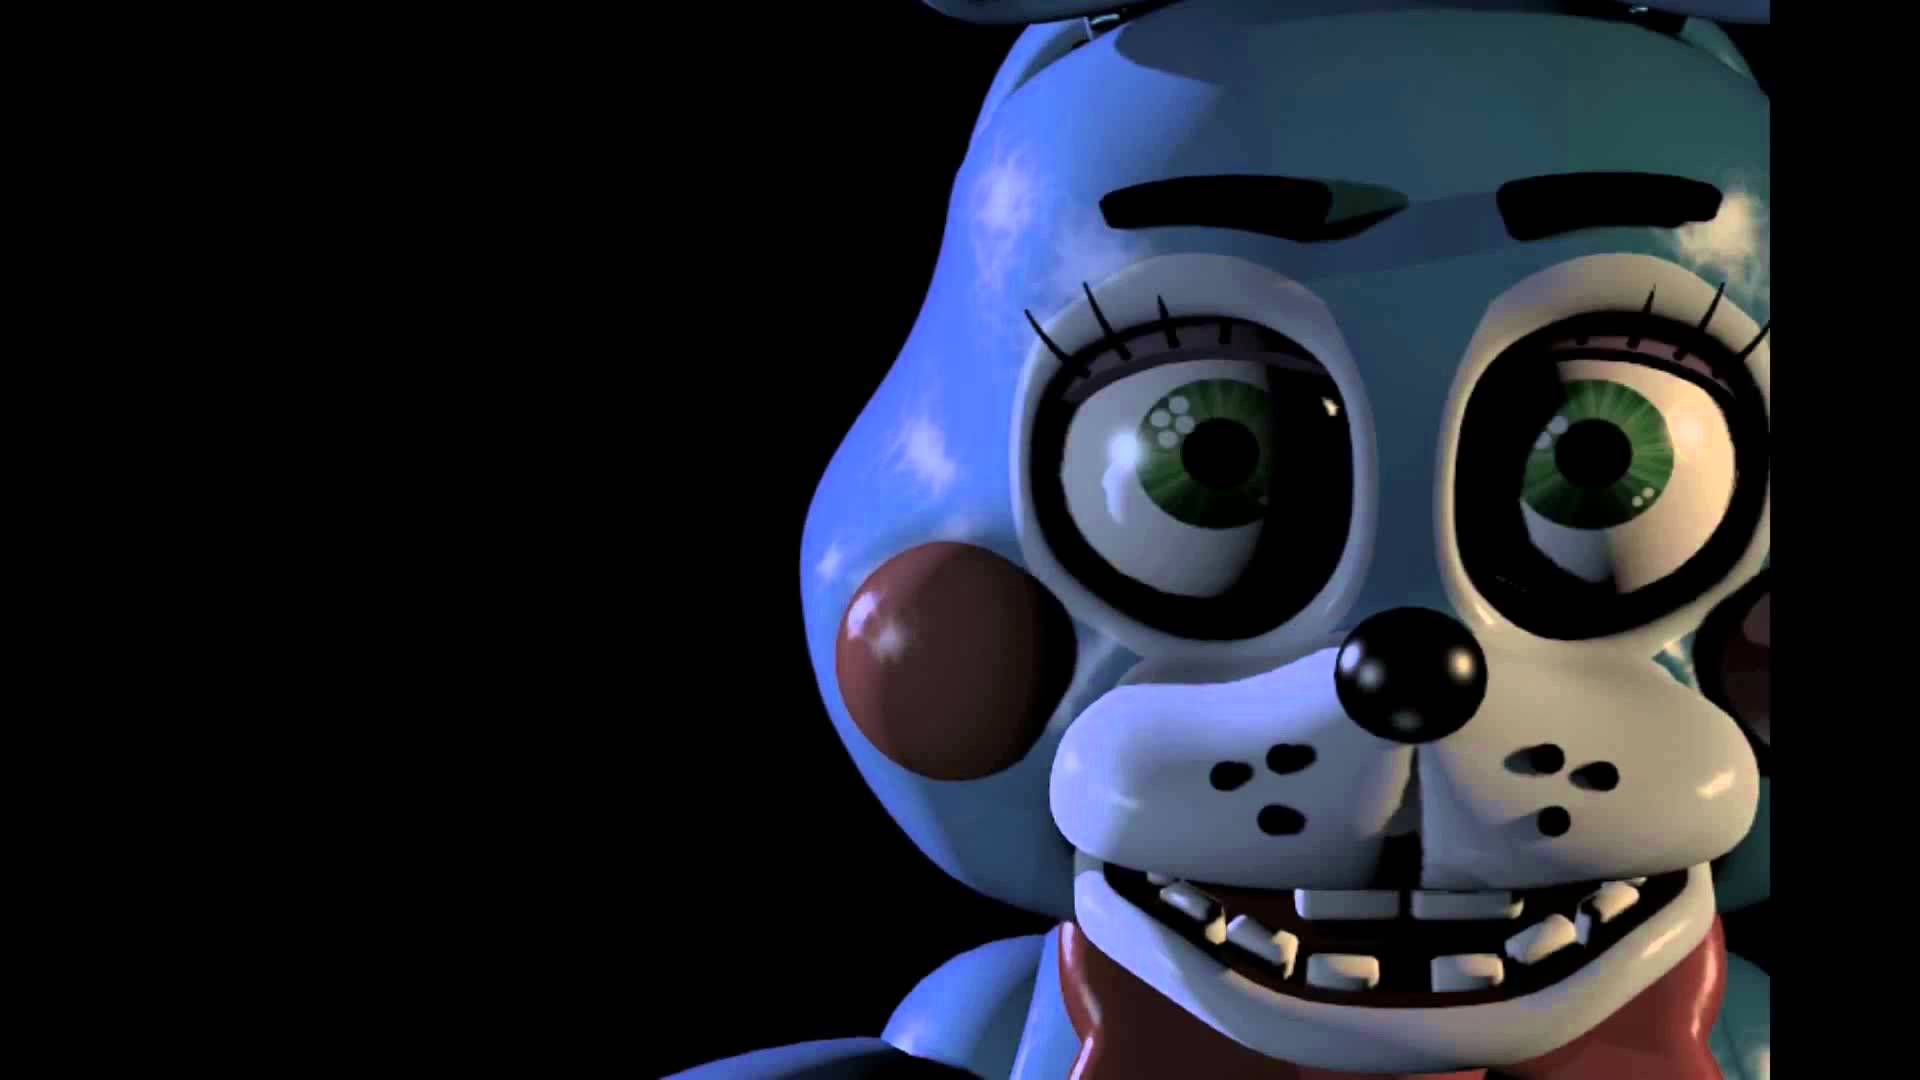 Modojo | Helpful Hints for Five Nights at Freddy's 2